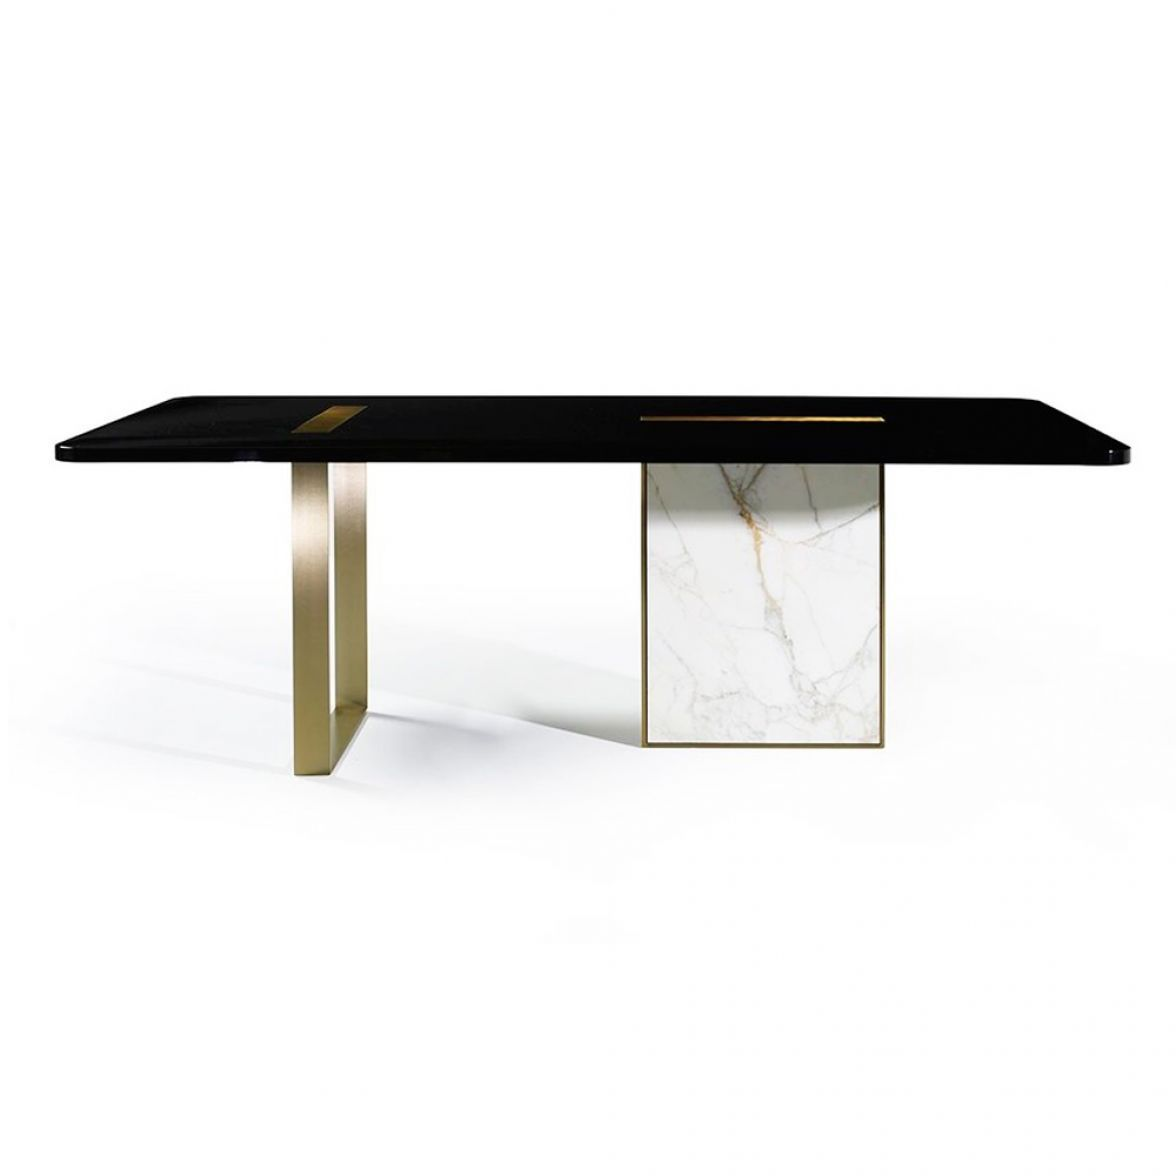 Tyron dining table